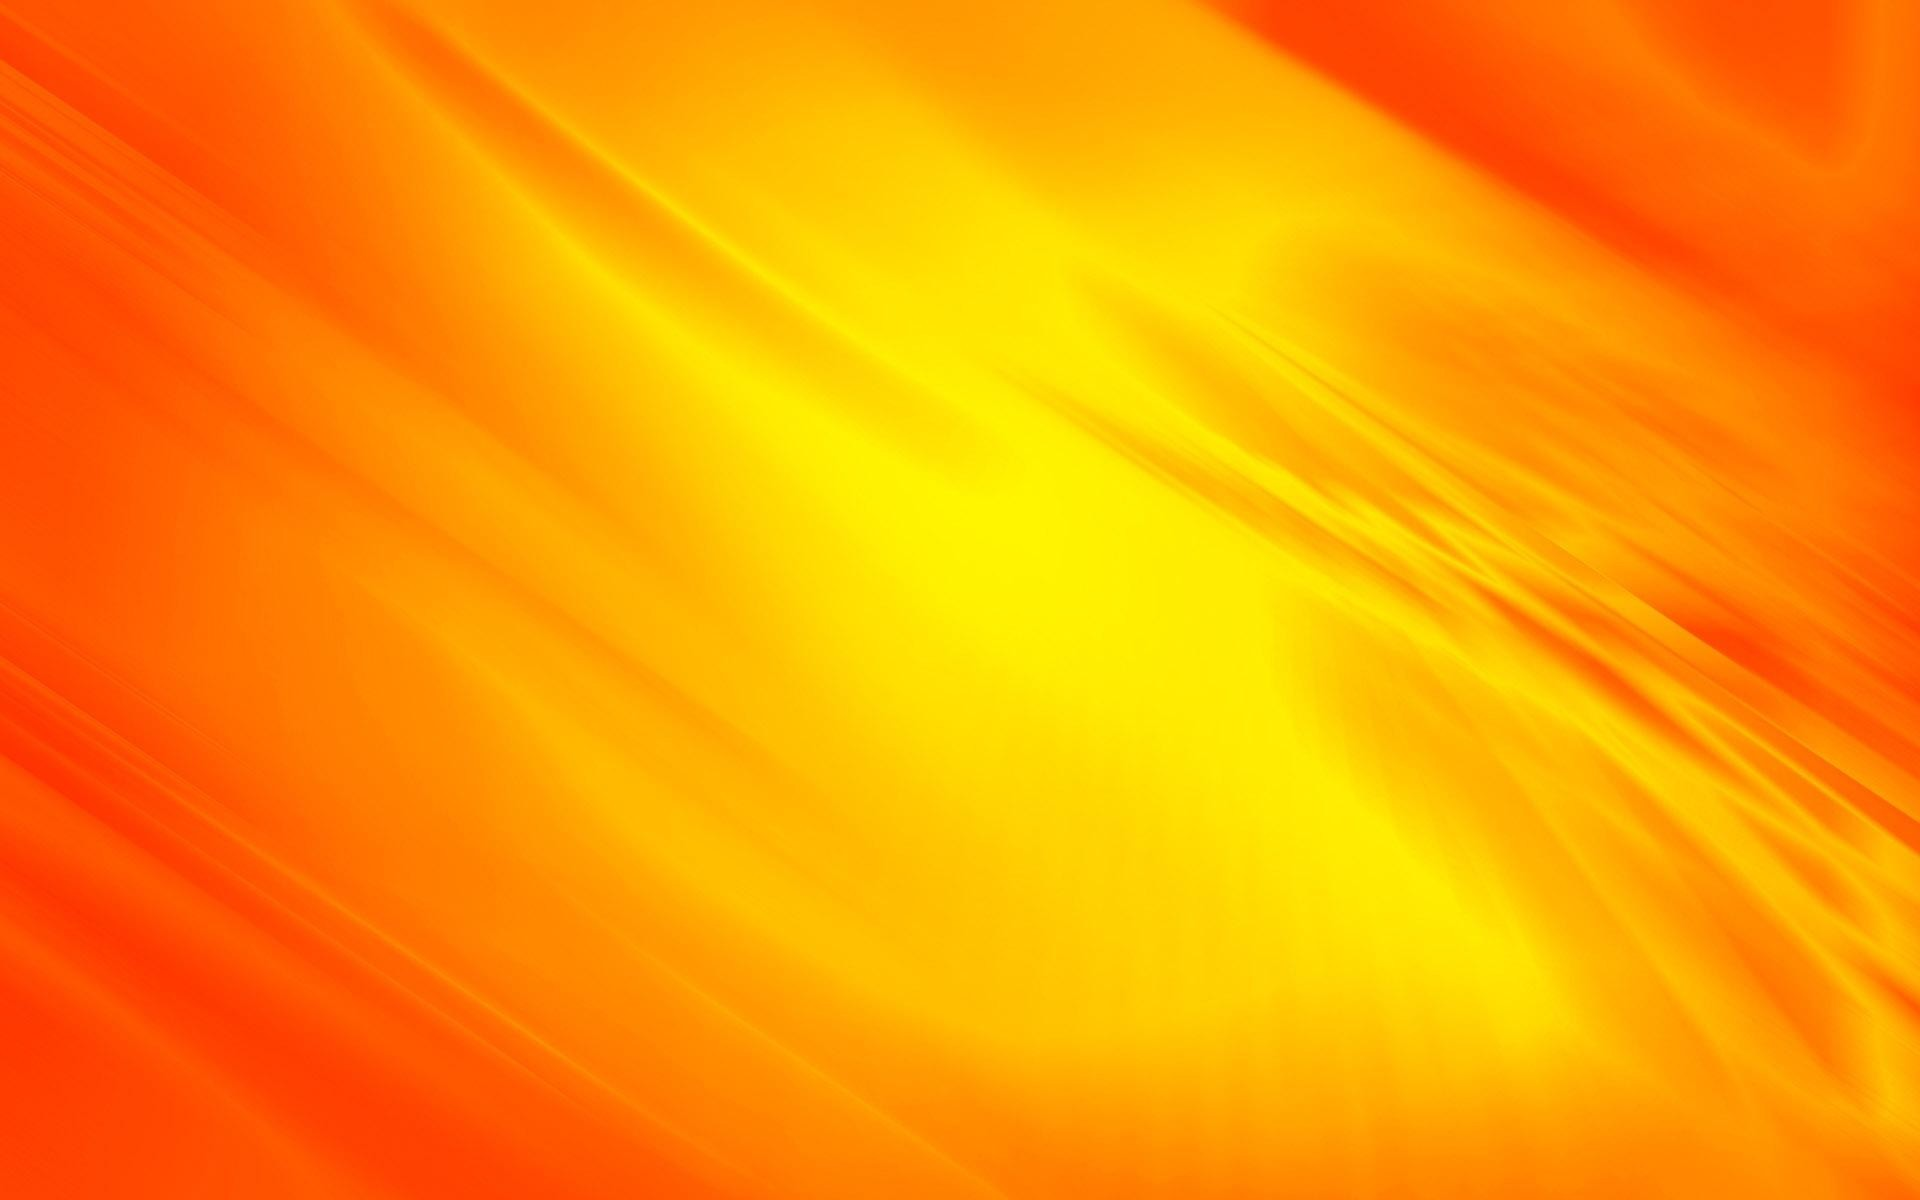 Yellow orange flowing curves – (#109115) – High Quality and Resolution .